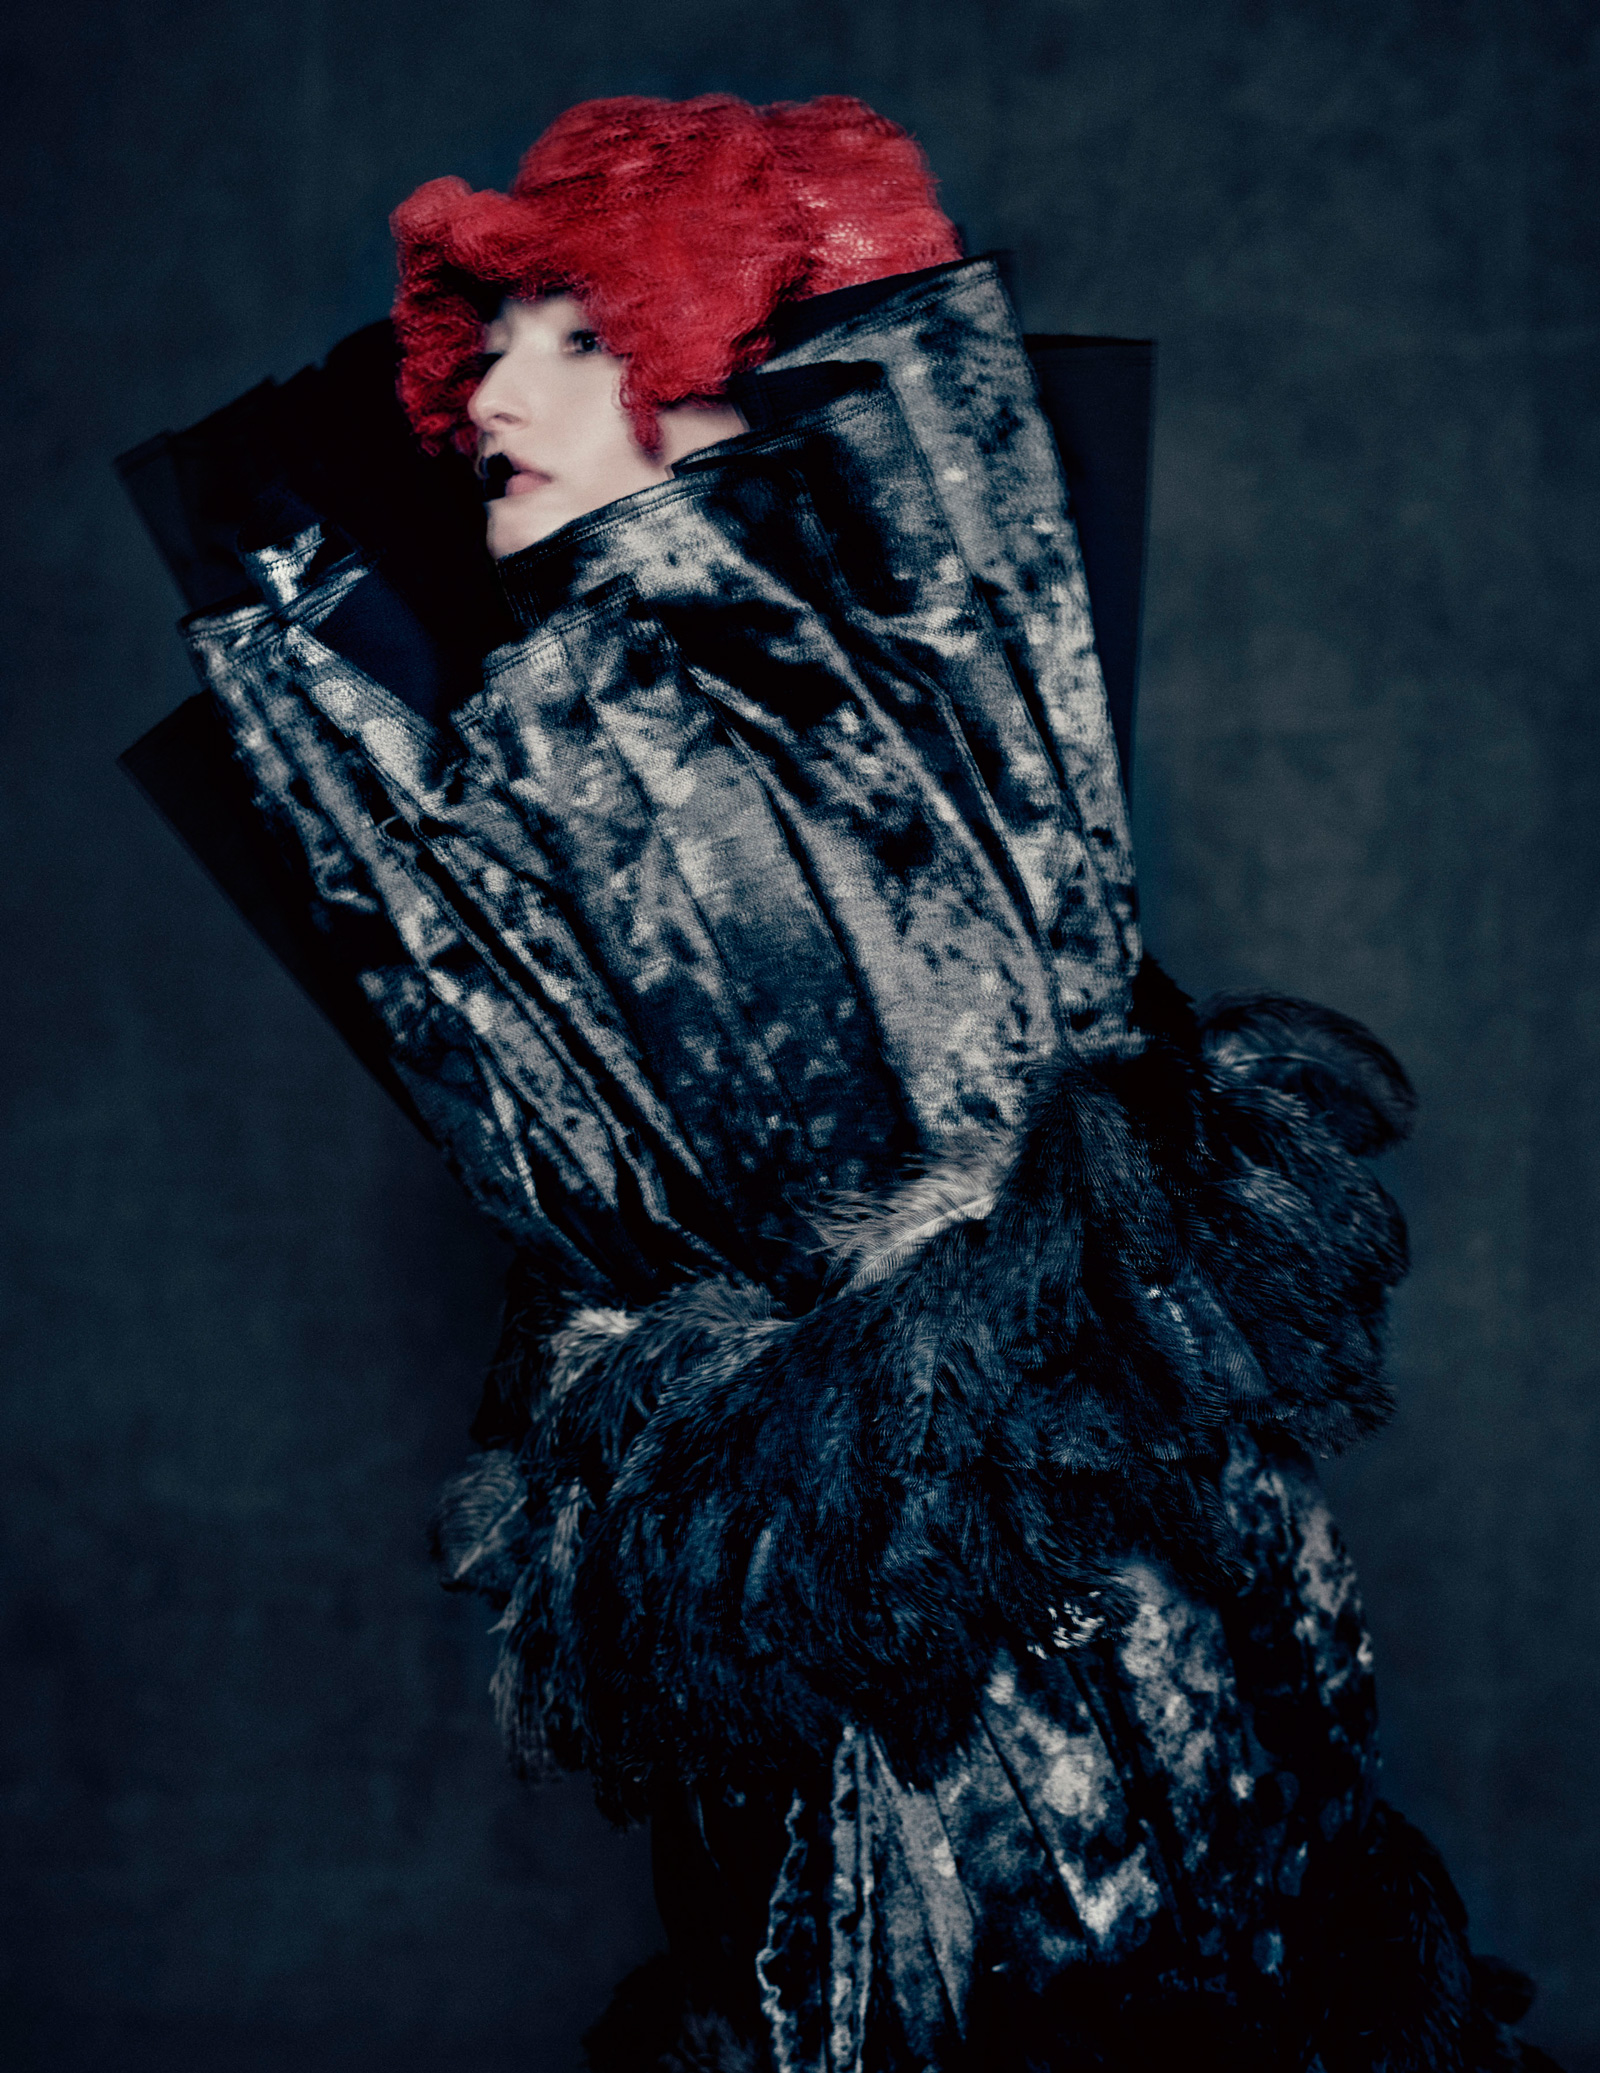 """Paolo Roversi/Comme des Garçons/The Metropolitan Museum of Art Publicity photo for Kawakubo's """"Blue Witch"""" collection, spring/summer 2016"""